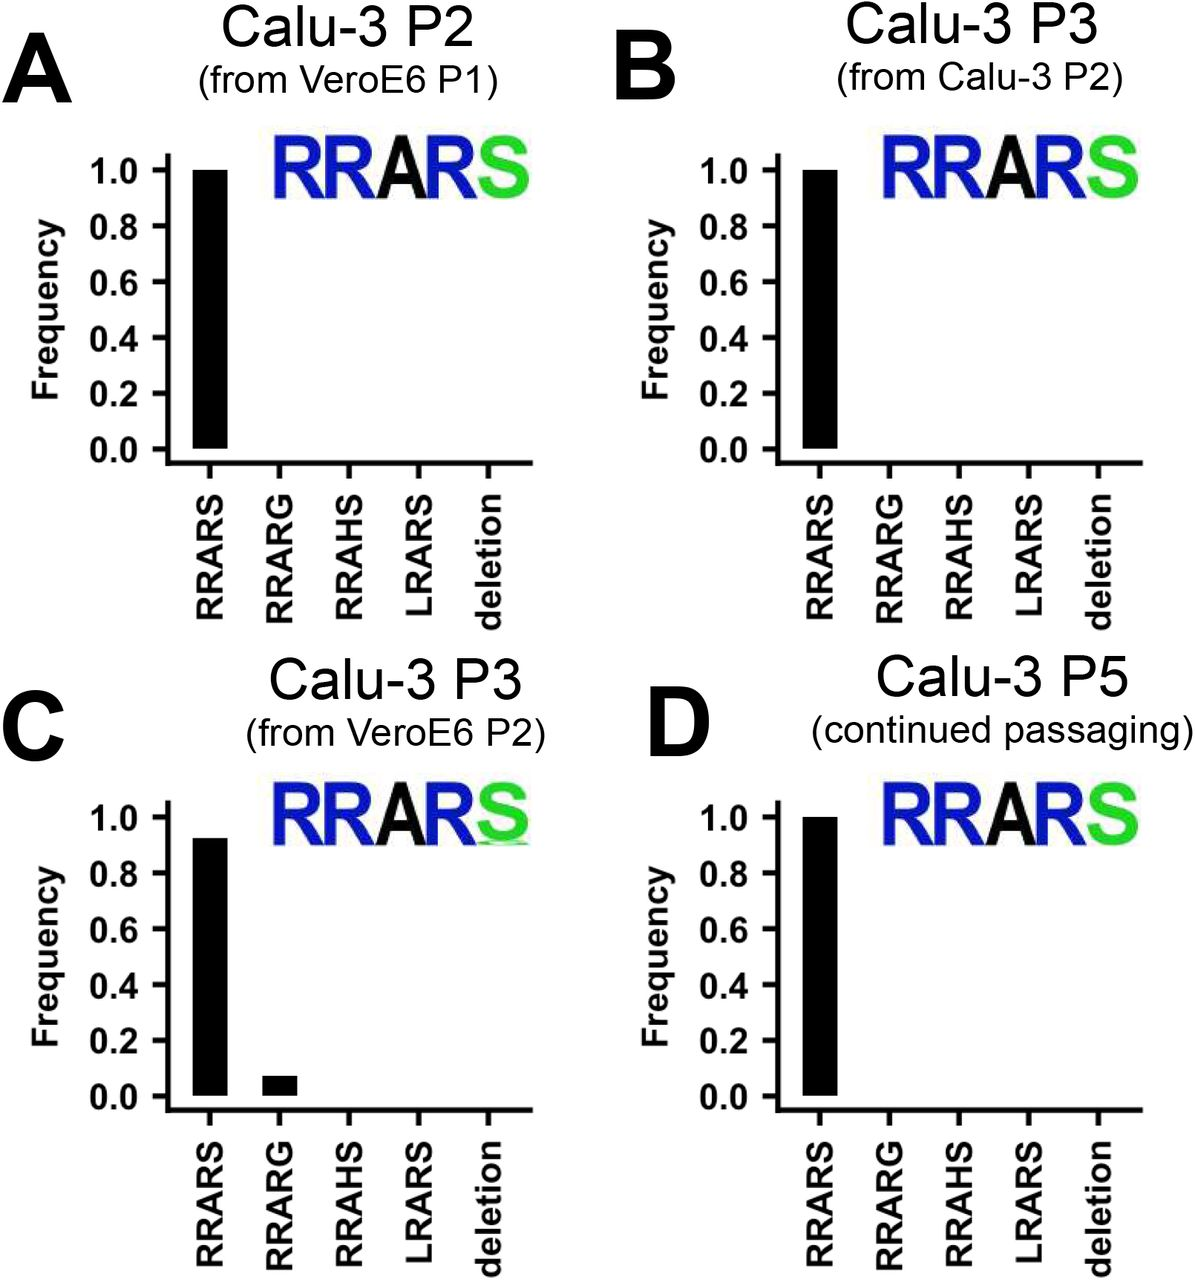 SARS-CoV-2 propagation in Calu-3 cells efficiently prevents SARS-CoV-2 cell culture adaptation. ( A ) Deep-sequencing analysis of Calu-3 passage 2 virus from a VeroE6 passage 1. ( B ) Deep-sequencing analysis of Calu-3 passage 3 virus from the Calu-3 passage 2 in A. ( C ) Deep-sequencing analysis of Calu-3 passage 3 virus grown from a VeroE6 passage 2 stock ( Figure 1A ). Deep-sequencing analysis of Calu-3 passage 5 virus from a Calu-3 passage 3 stock in C. In each graph the amino acid sequence logo of the multibasic cleavage site is shown.